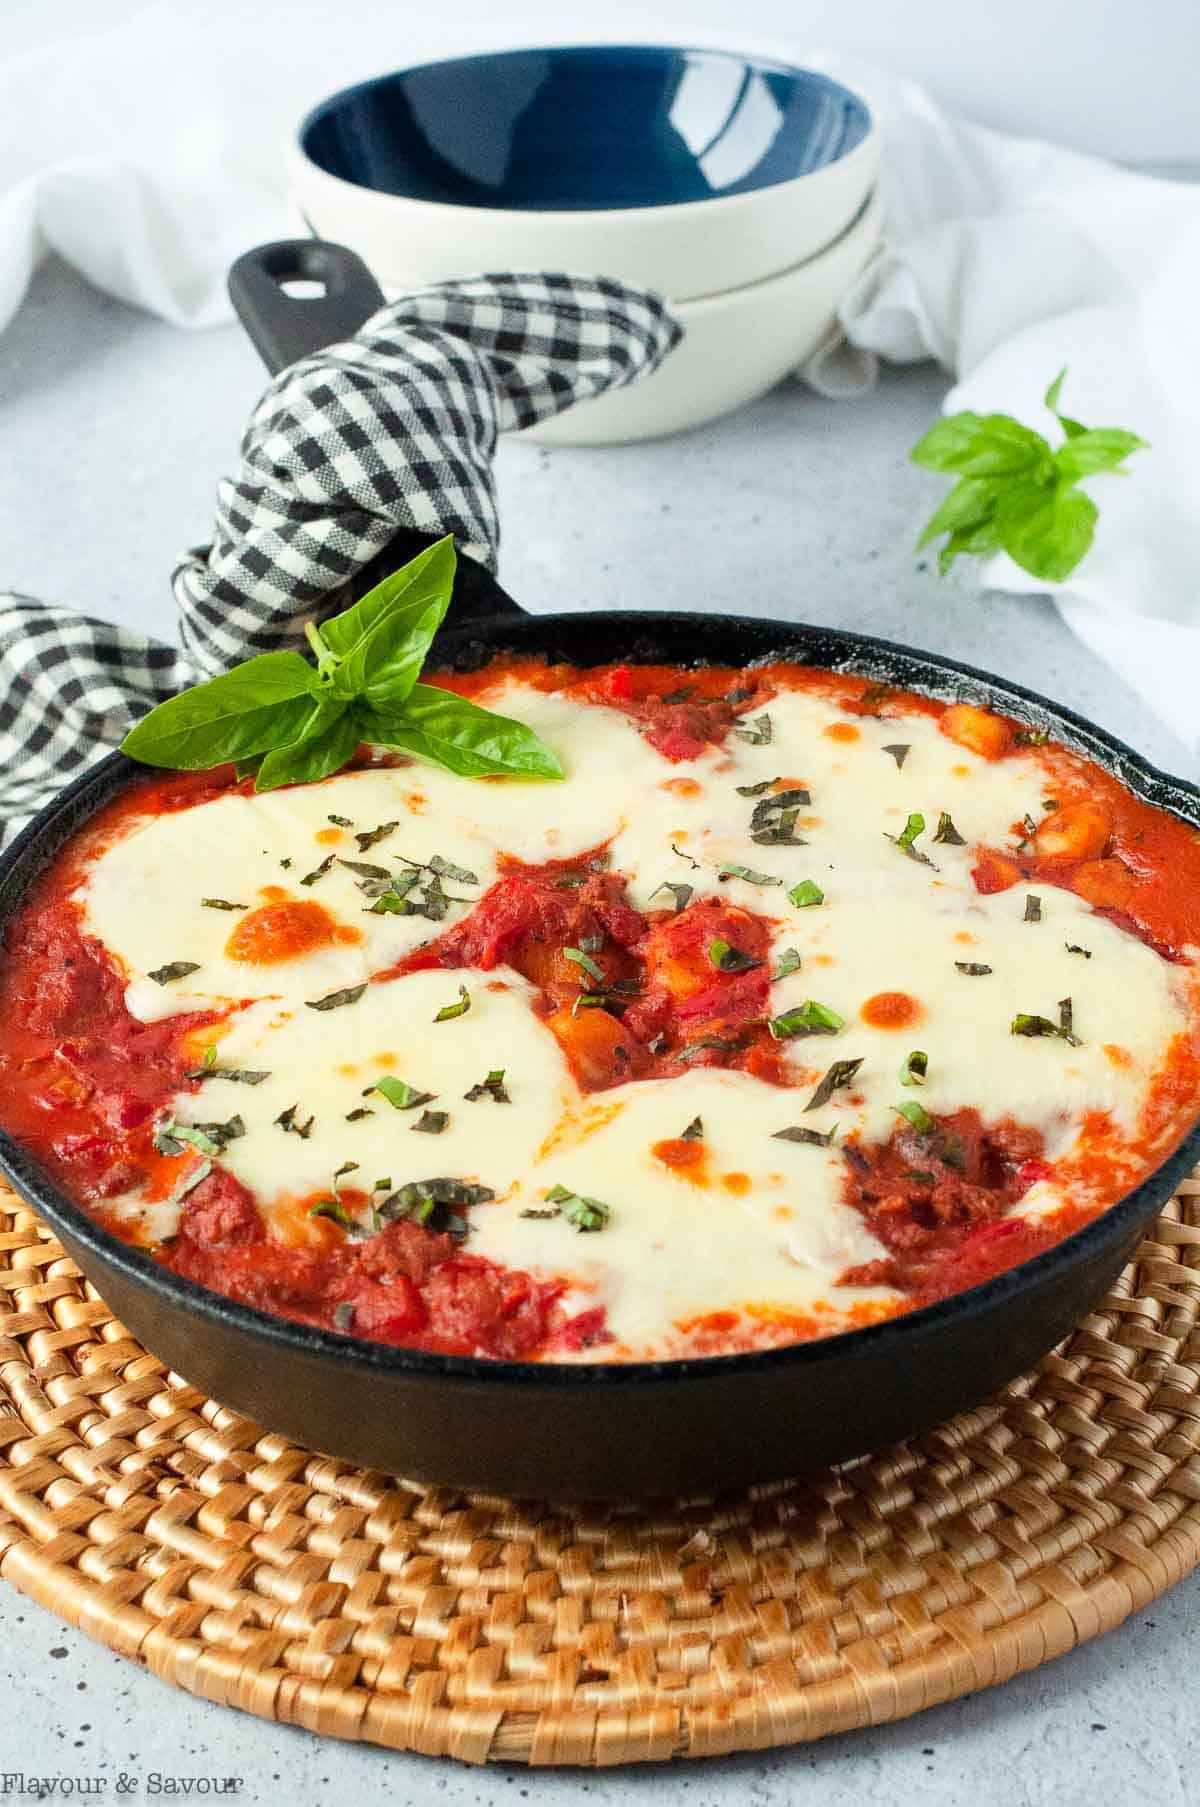 Skillet with baked gnocchi with tomatoes and cheese on a hot pad.